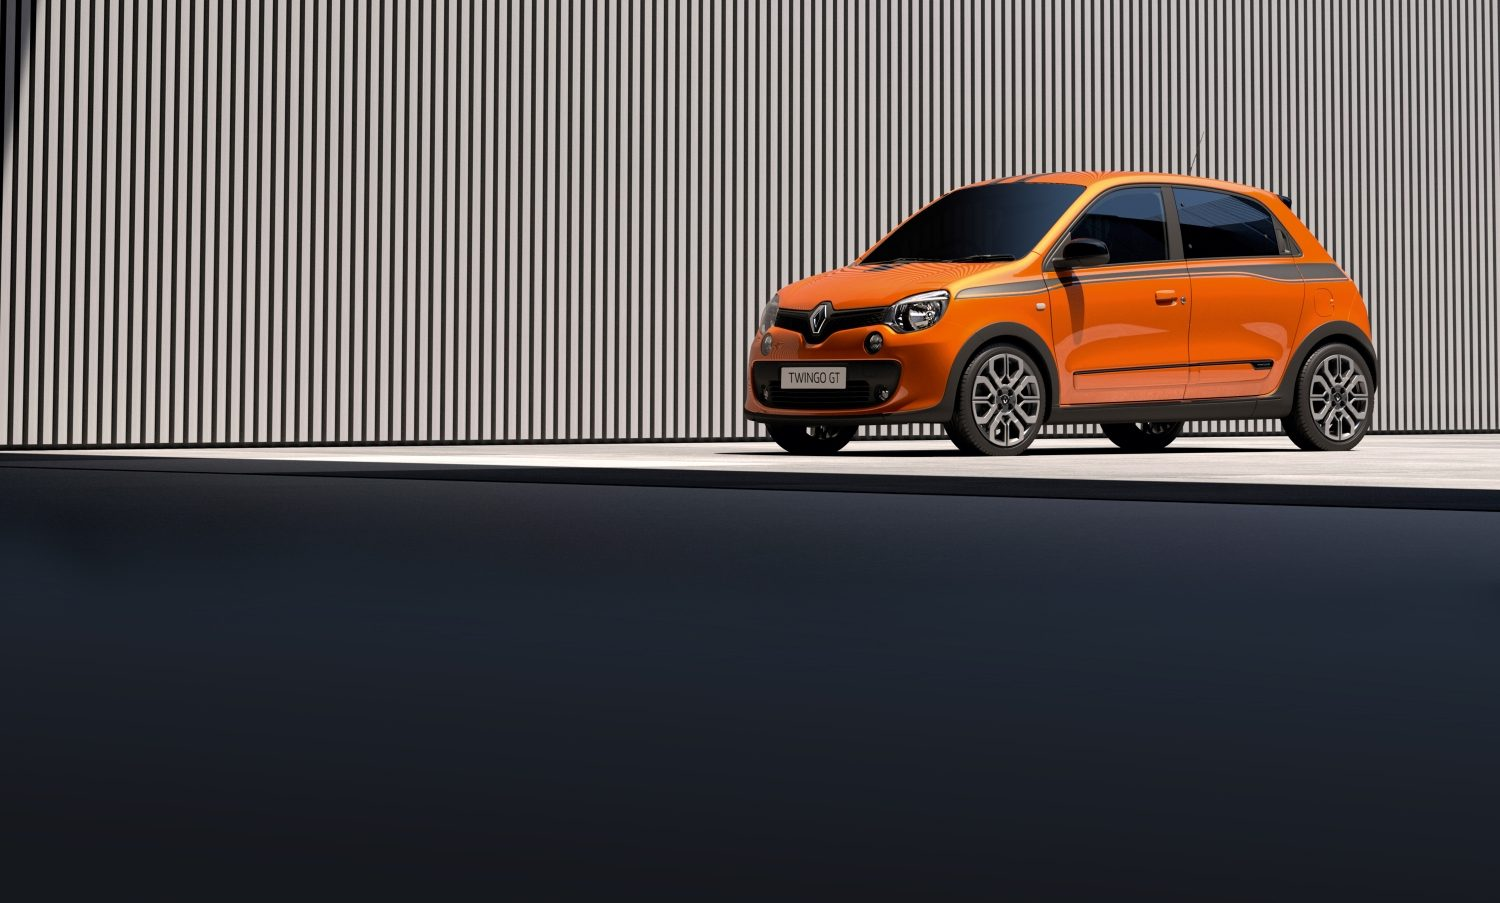 renault-twingo-gt-b07-ph1-beauty-shot-desktop.jpg.ximg.l_full_m.smart.jpg